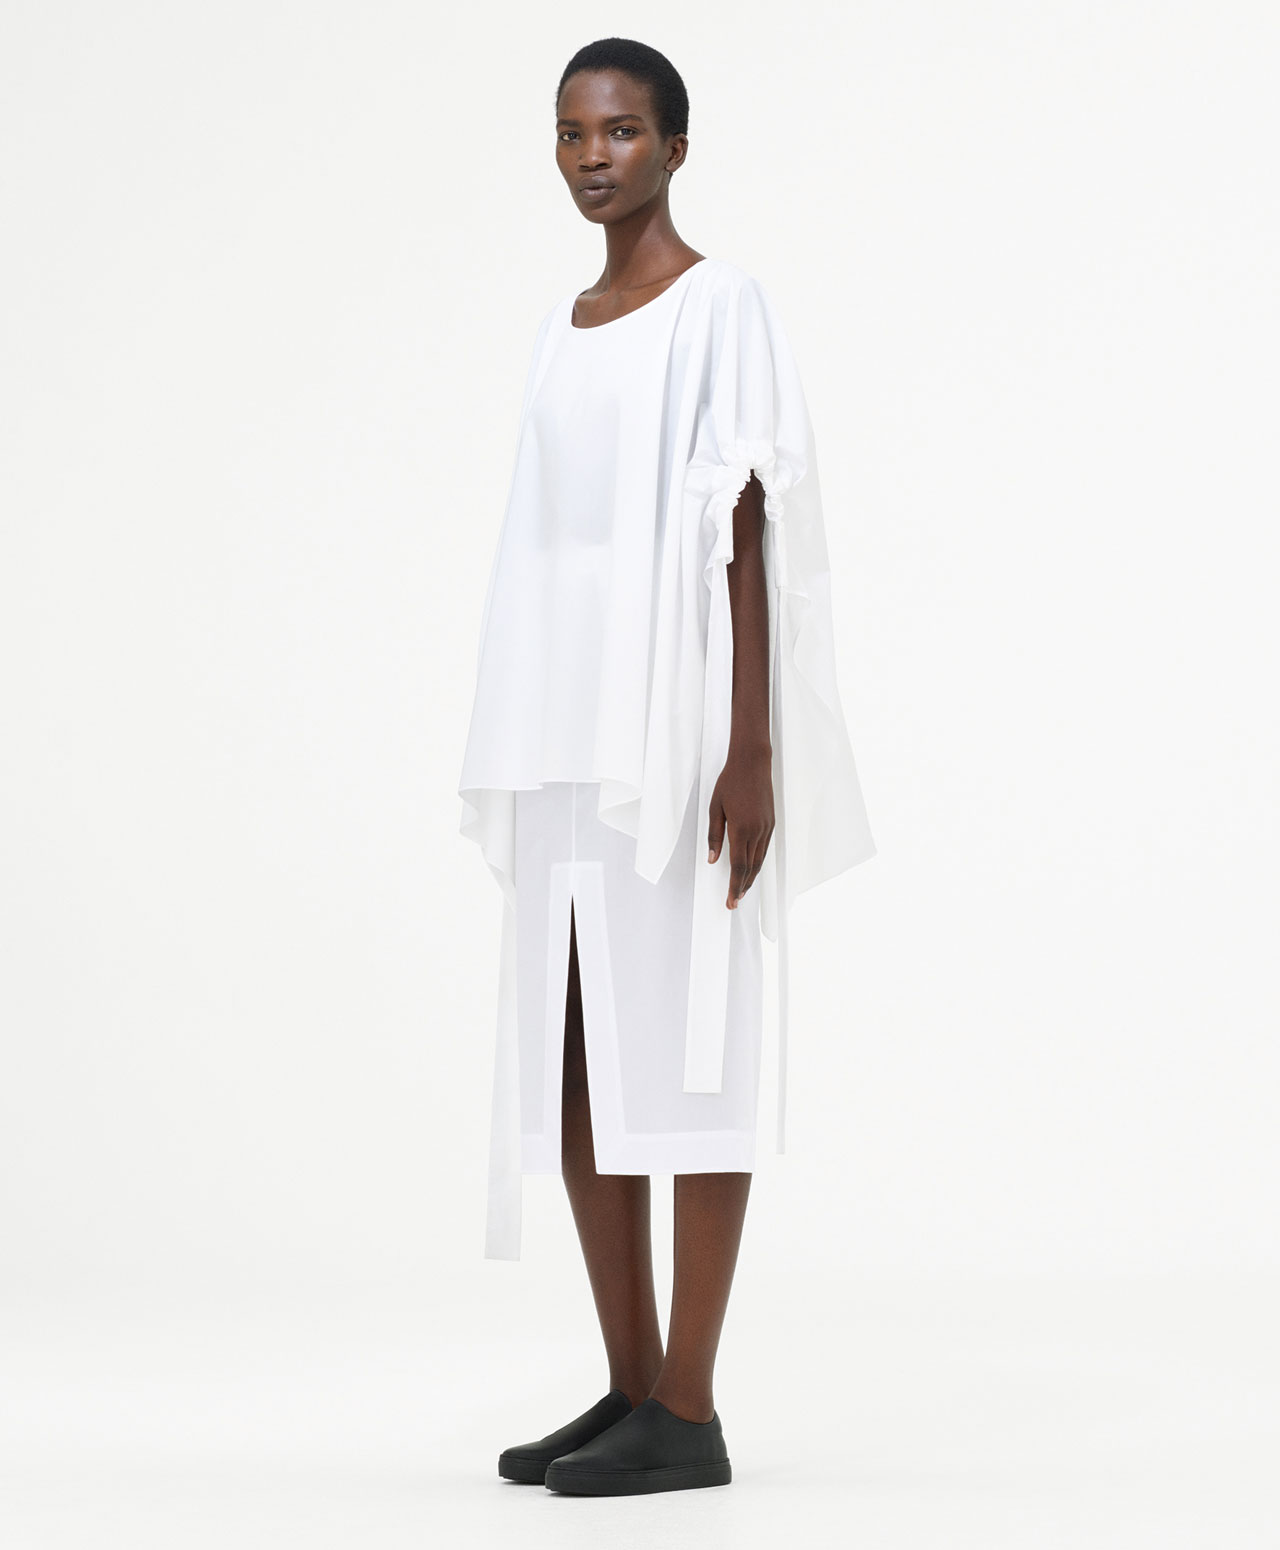 COS_SS17_Womens_Look_1